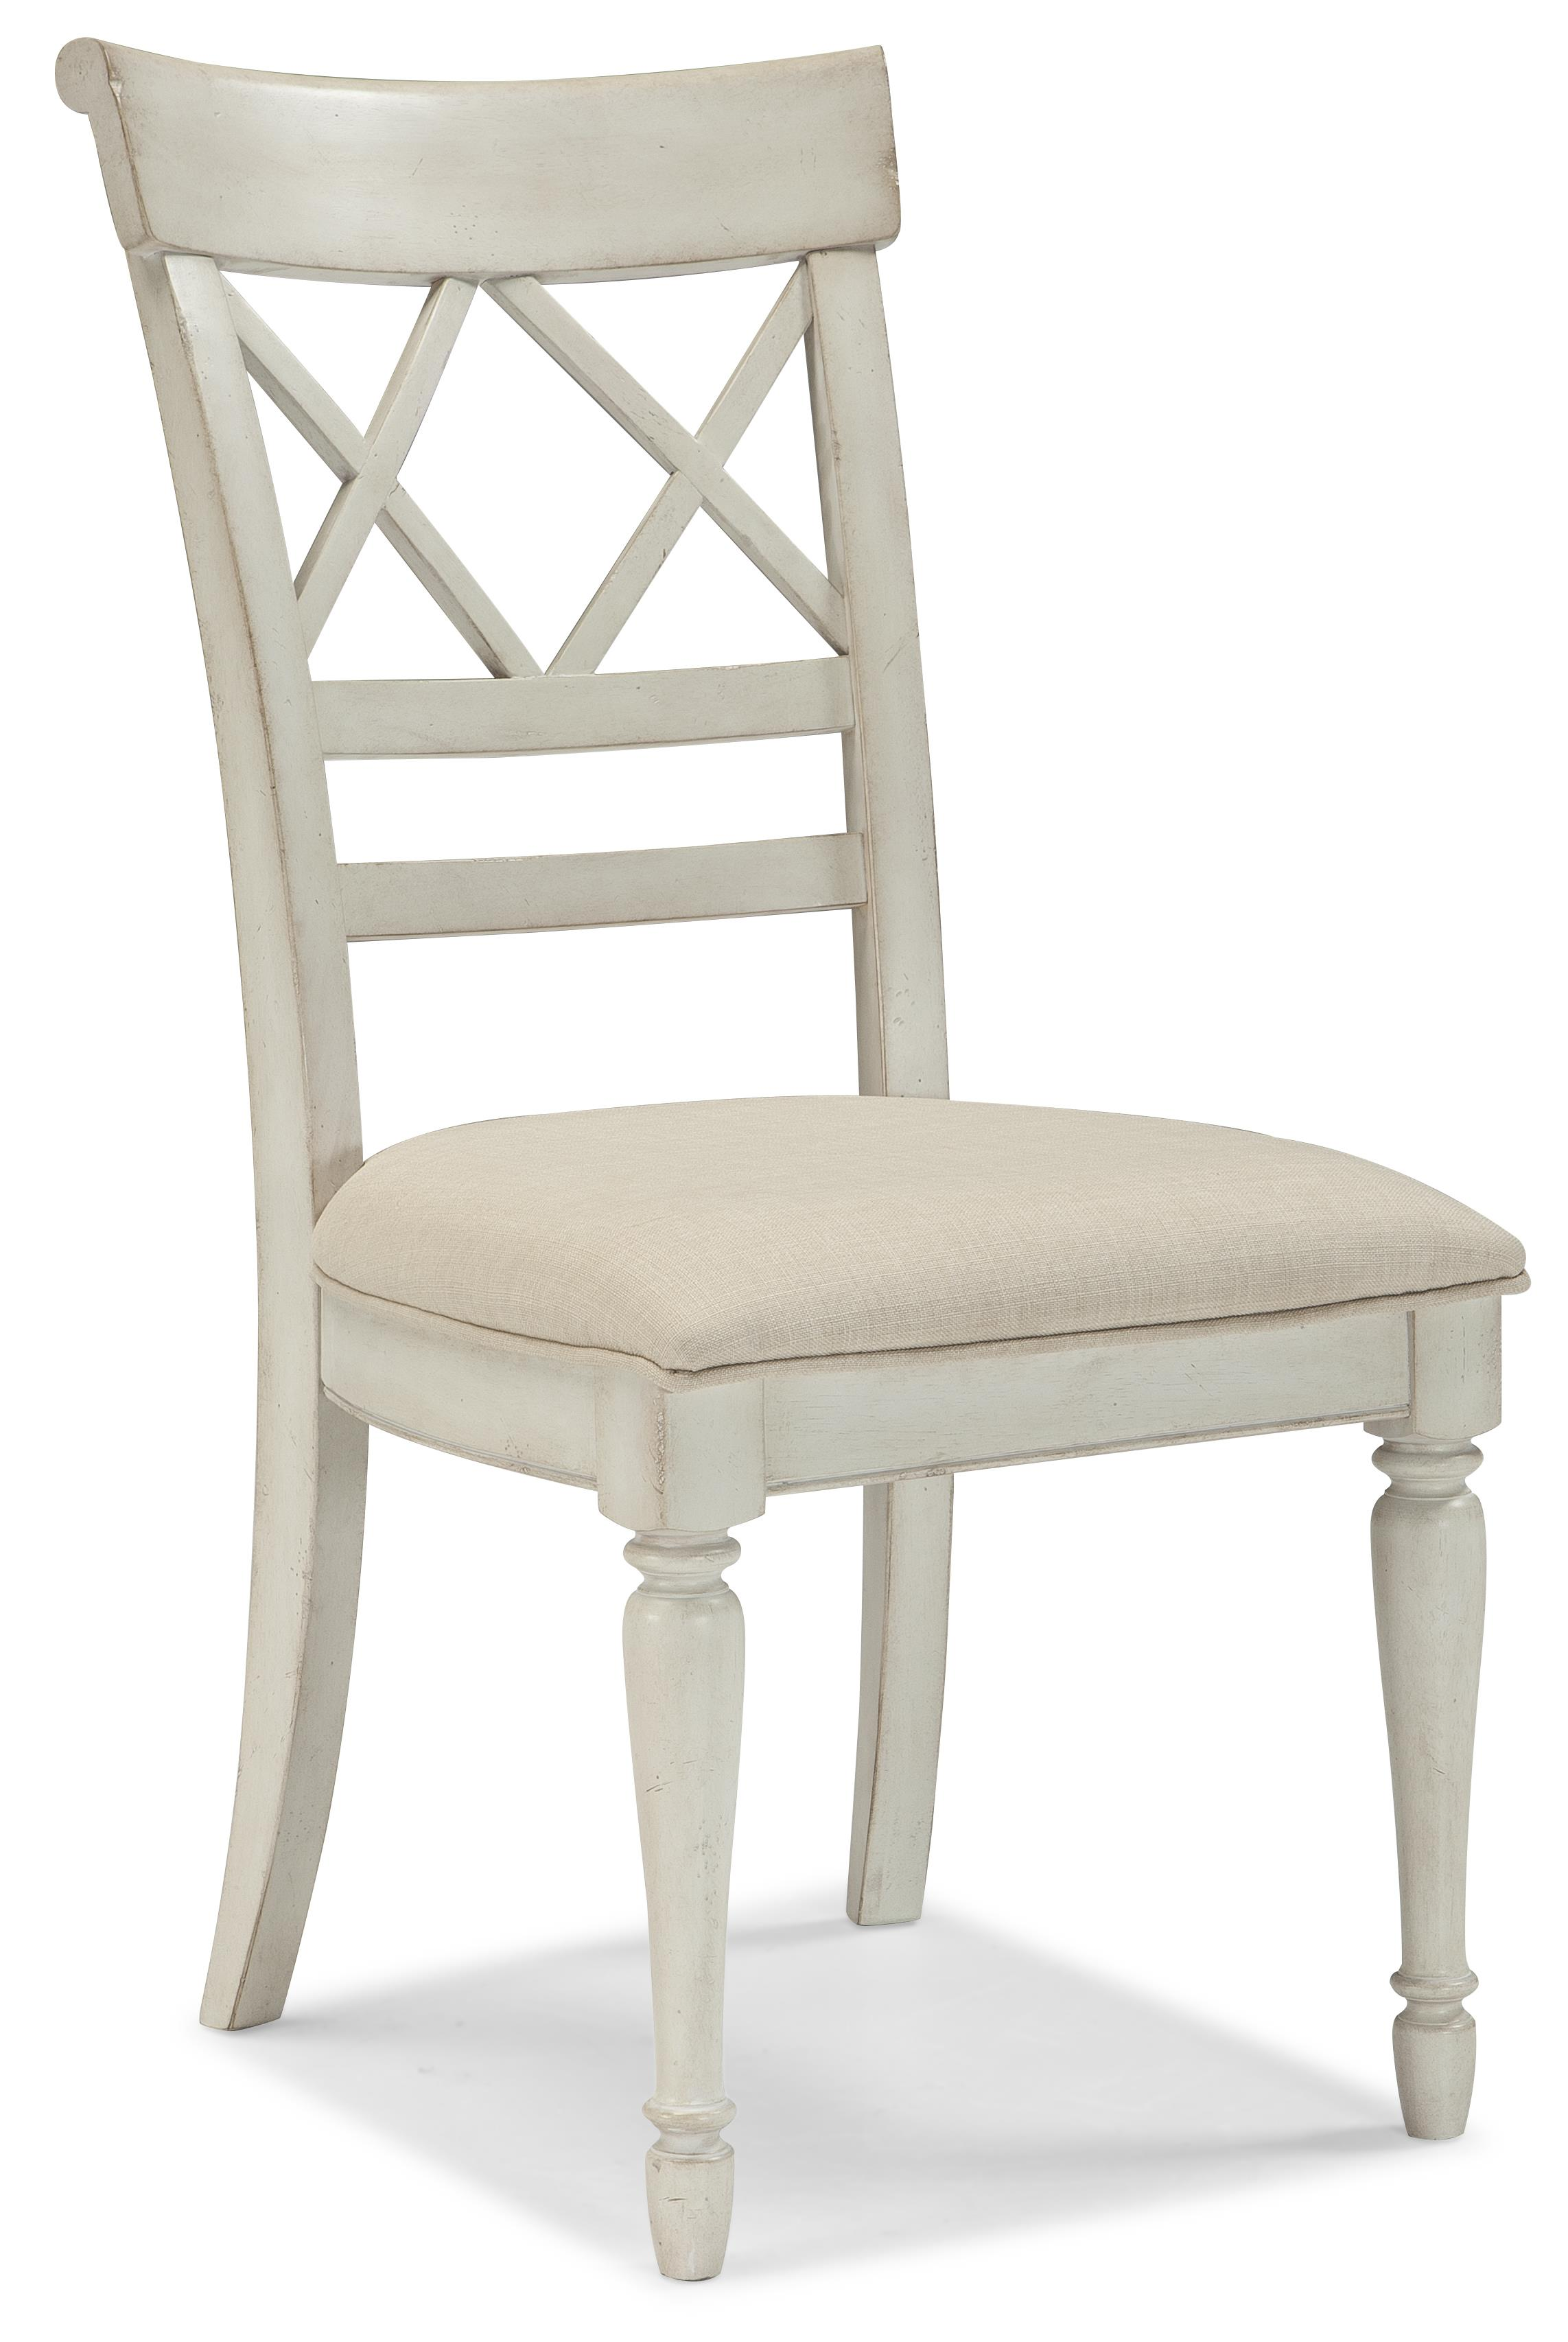 Antique White Dining Chairs Cottage Cottage Dining Chair W Upholstered Seat By Cresent Fine Furniture At Belfort Furniture